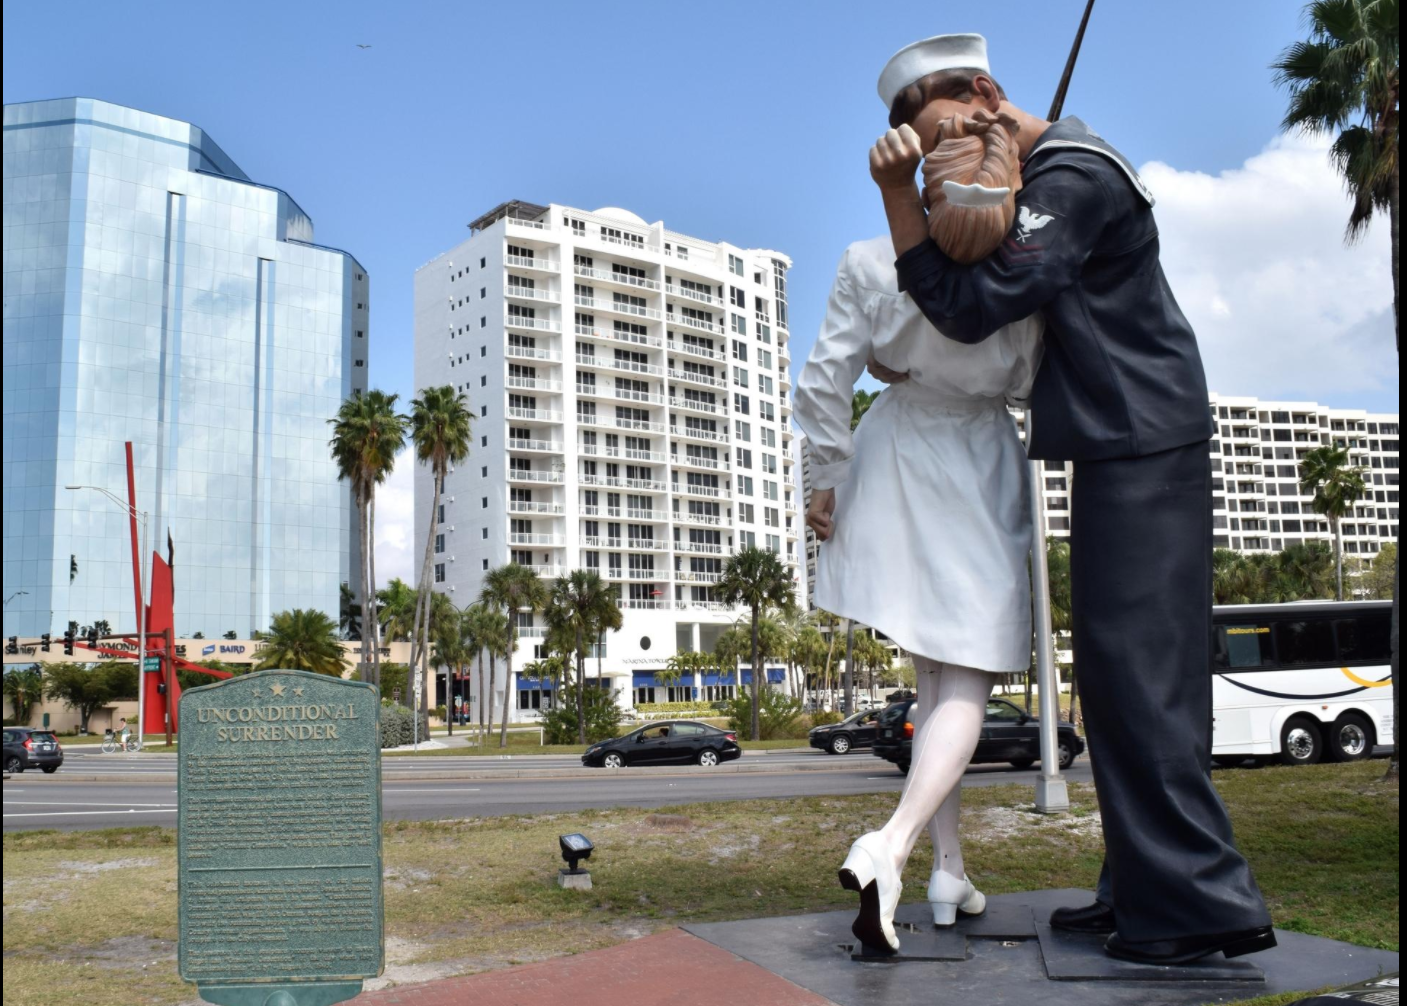 """Pictured is the """"Unconditional Surrender"""" Statue in Sarasota, FL."""